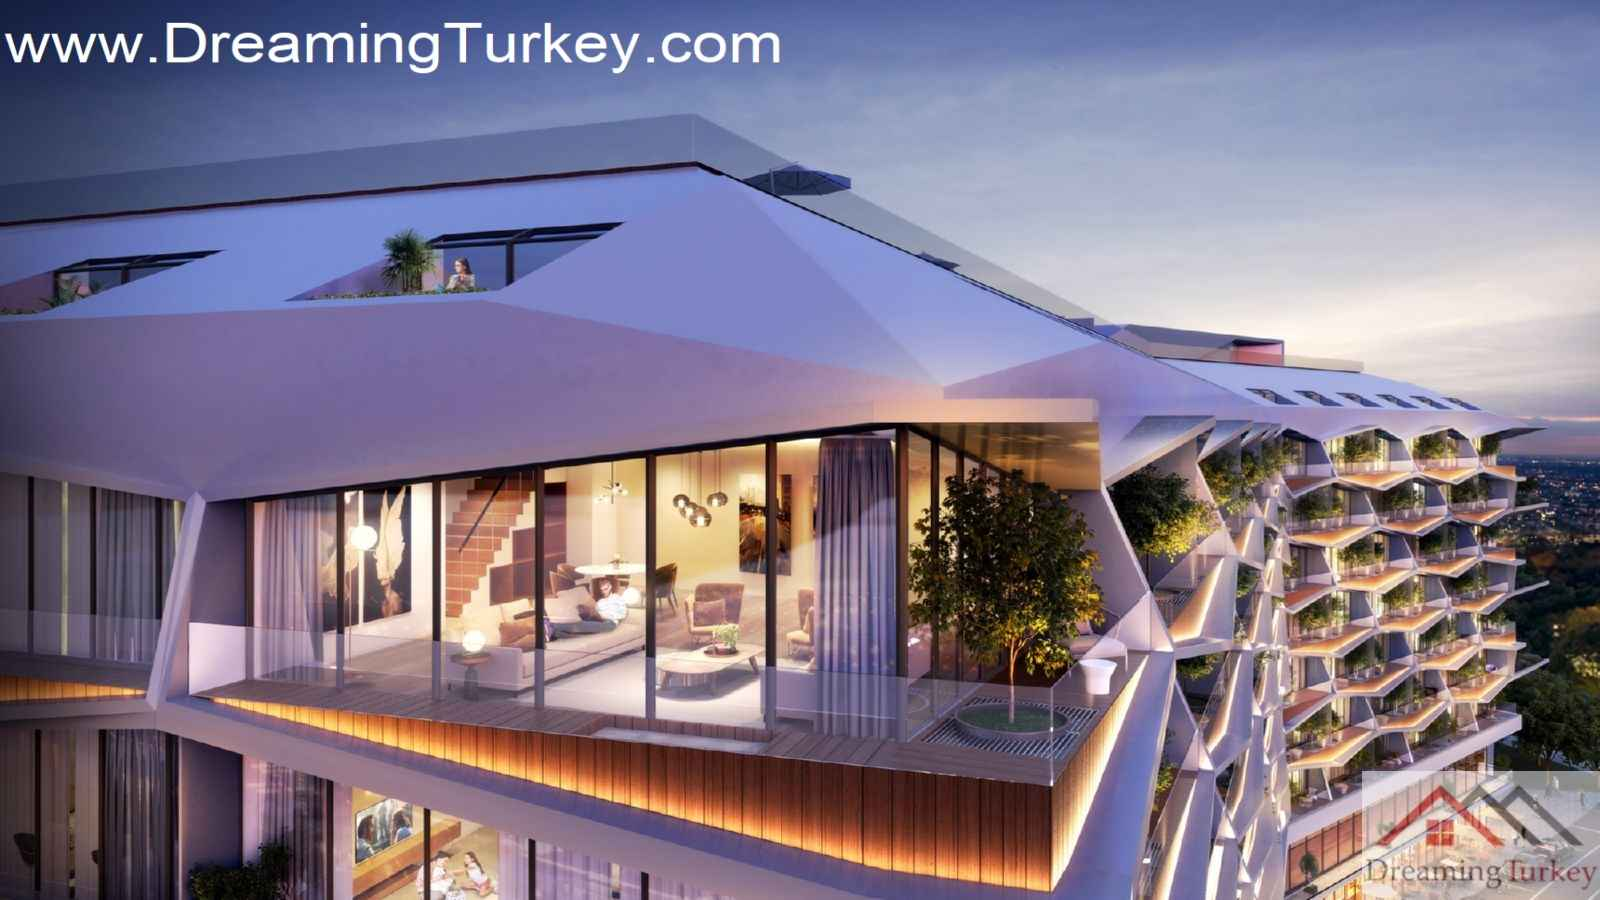 2-Bedroom Duplex Residence in the Heart of Istanbul